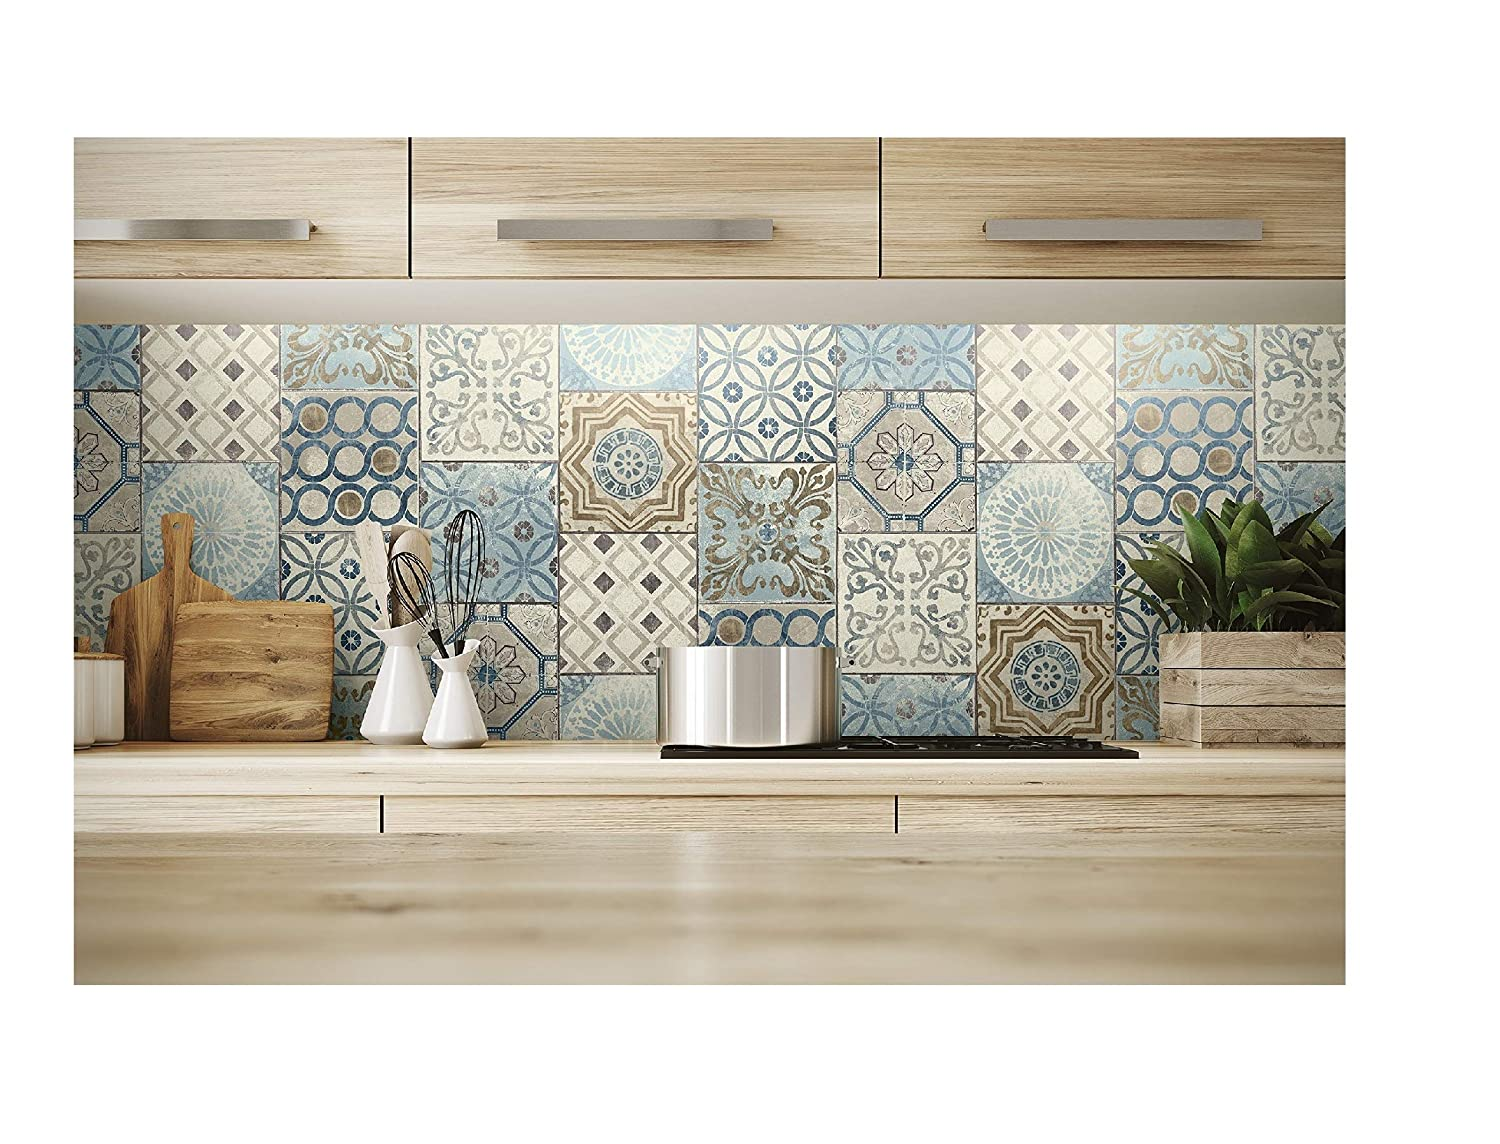 NextWall Moroccan Style Peel and Stick Mosaic Tile Wallpaper. (Blue, Copper & Grey)